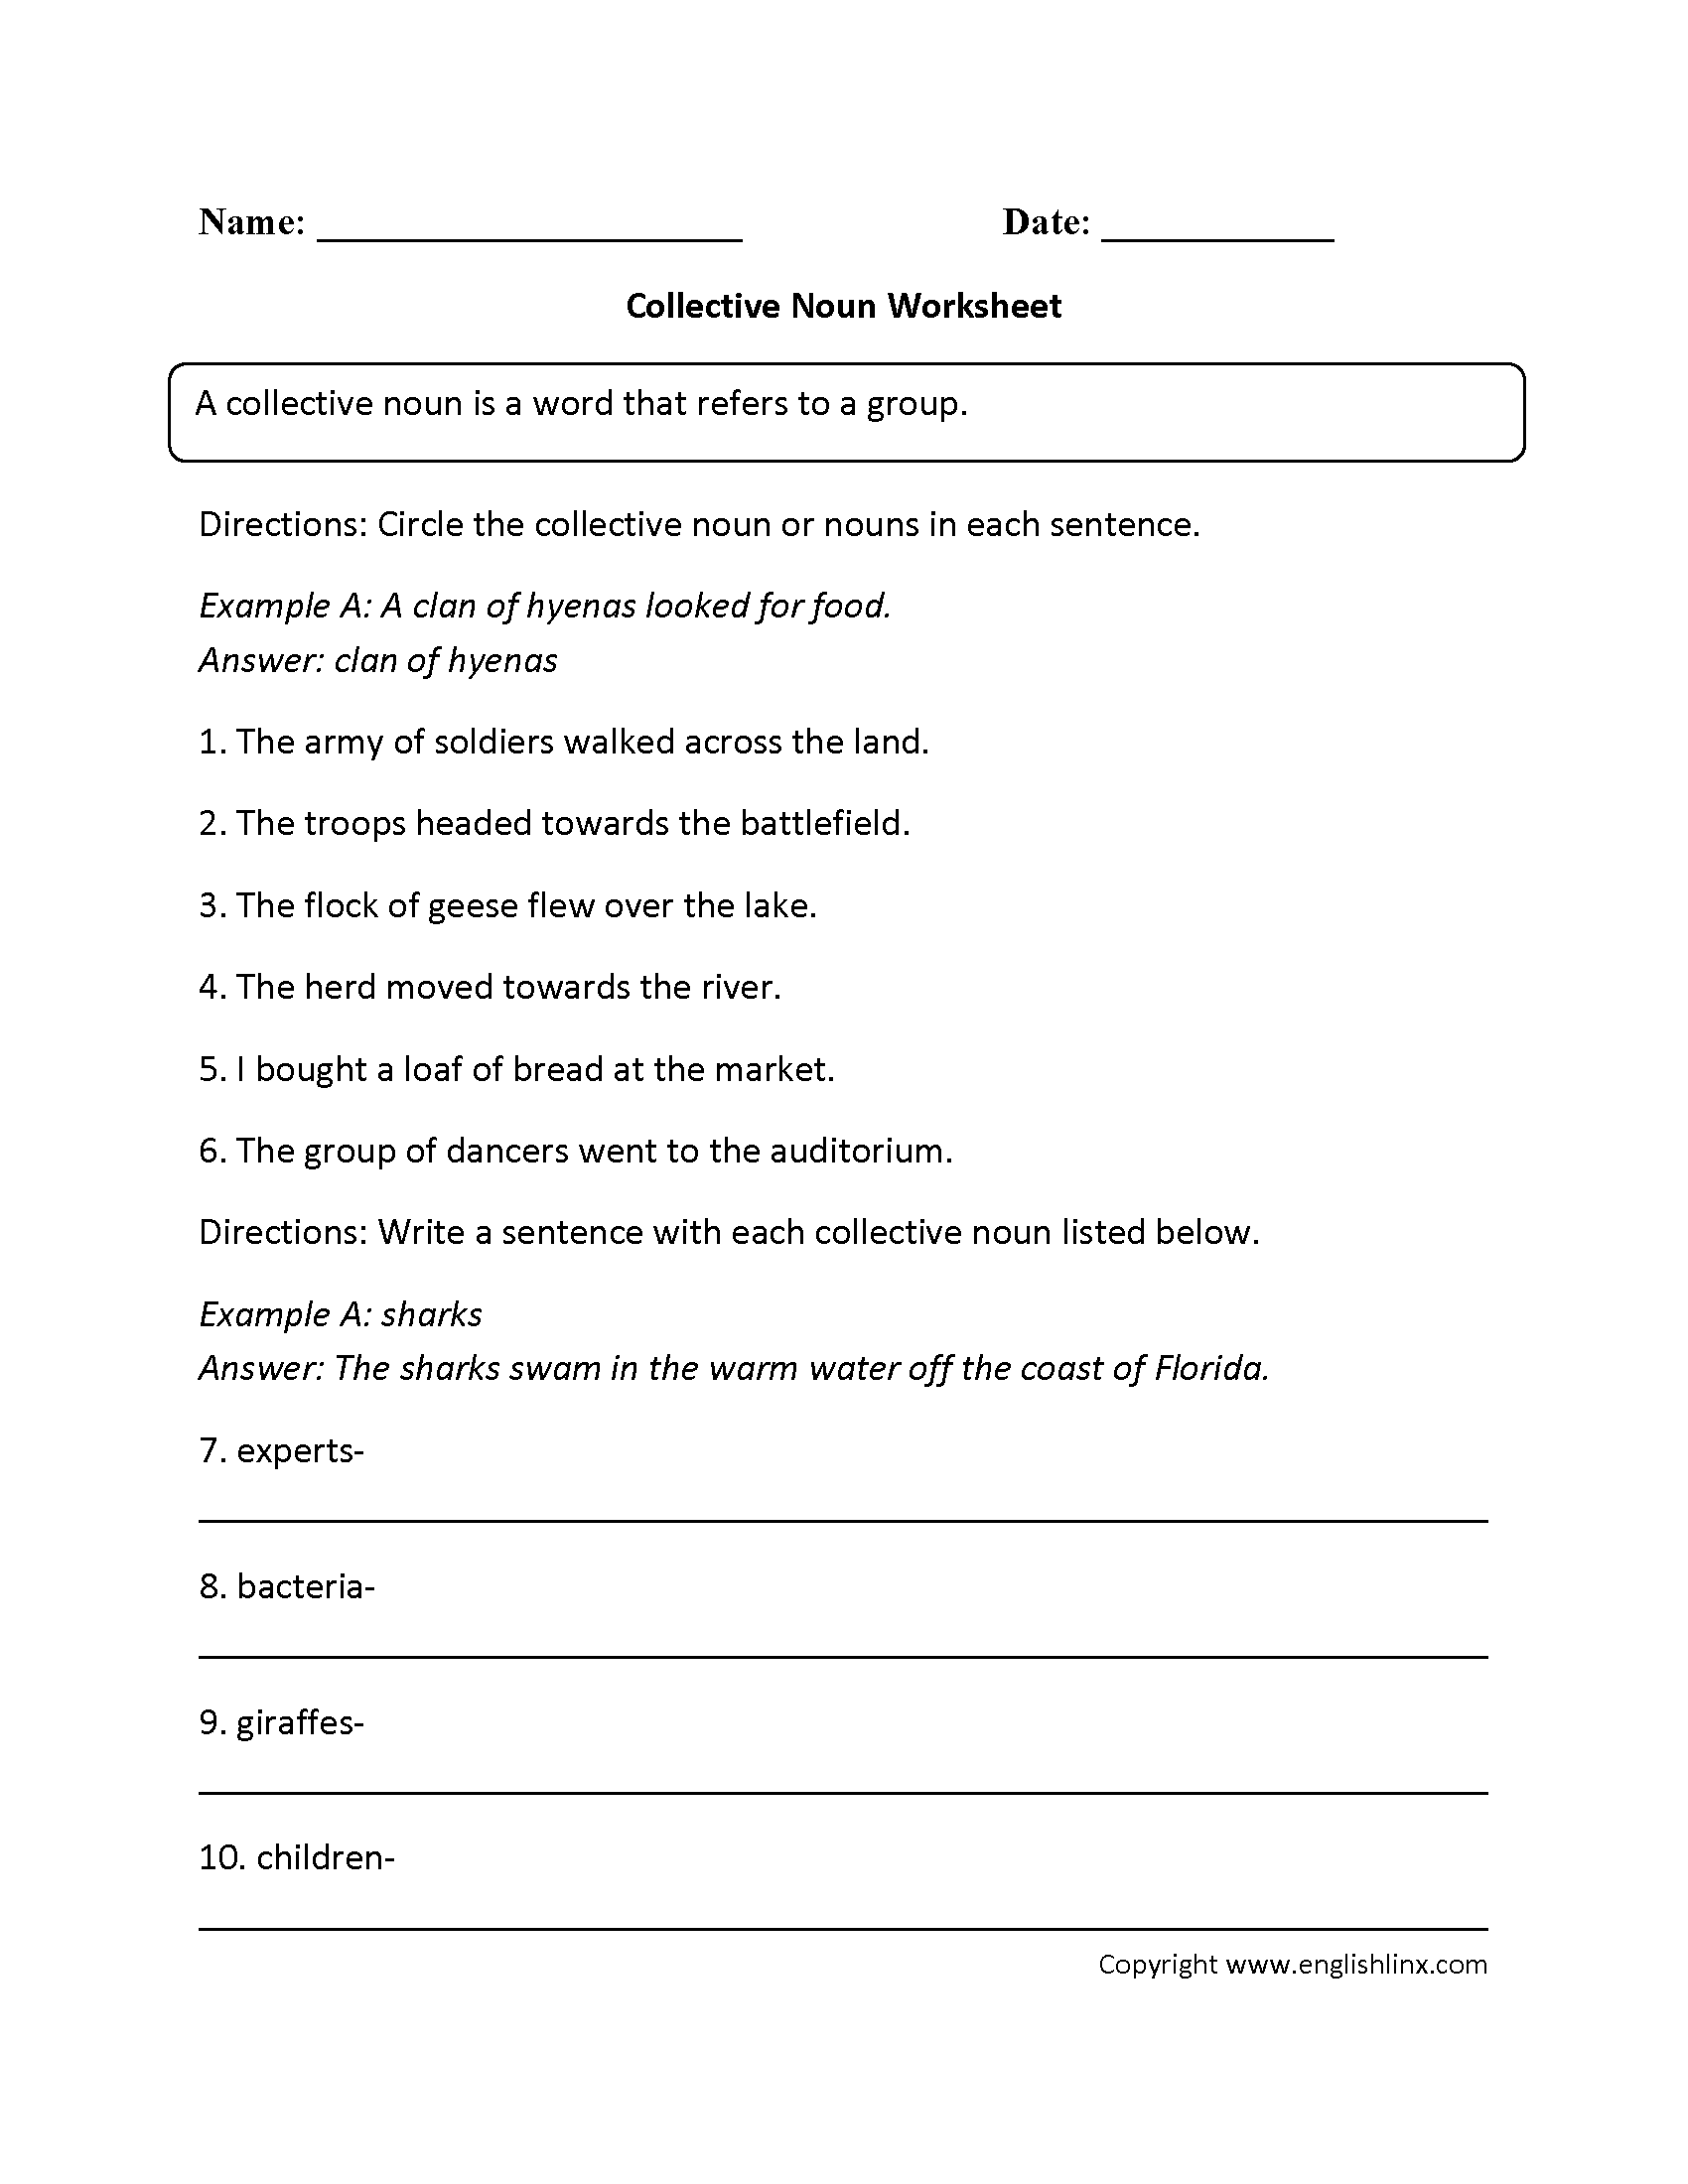 Printables Nouns Worksheet nouns worksheets collective worksheet